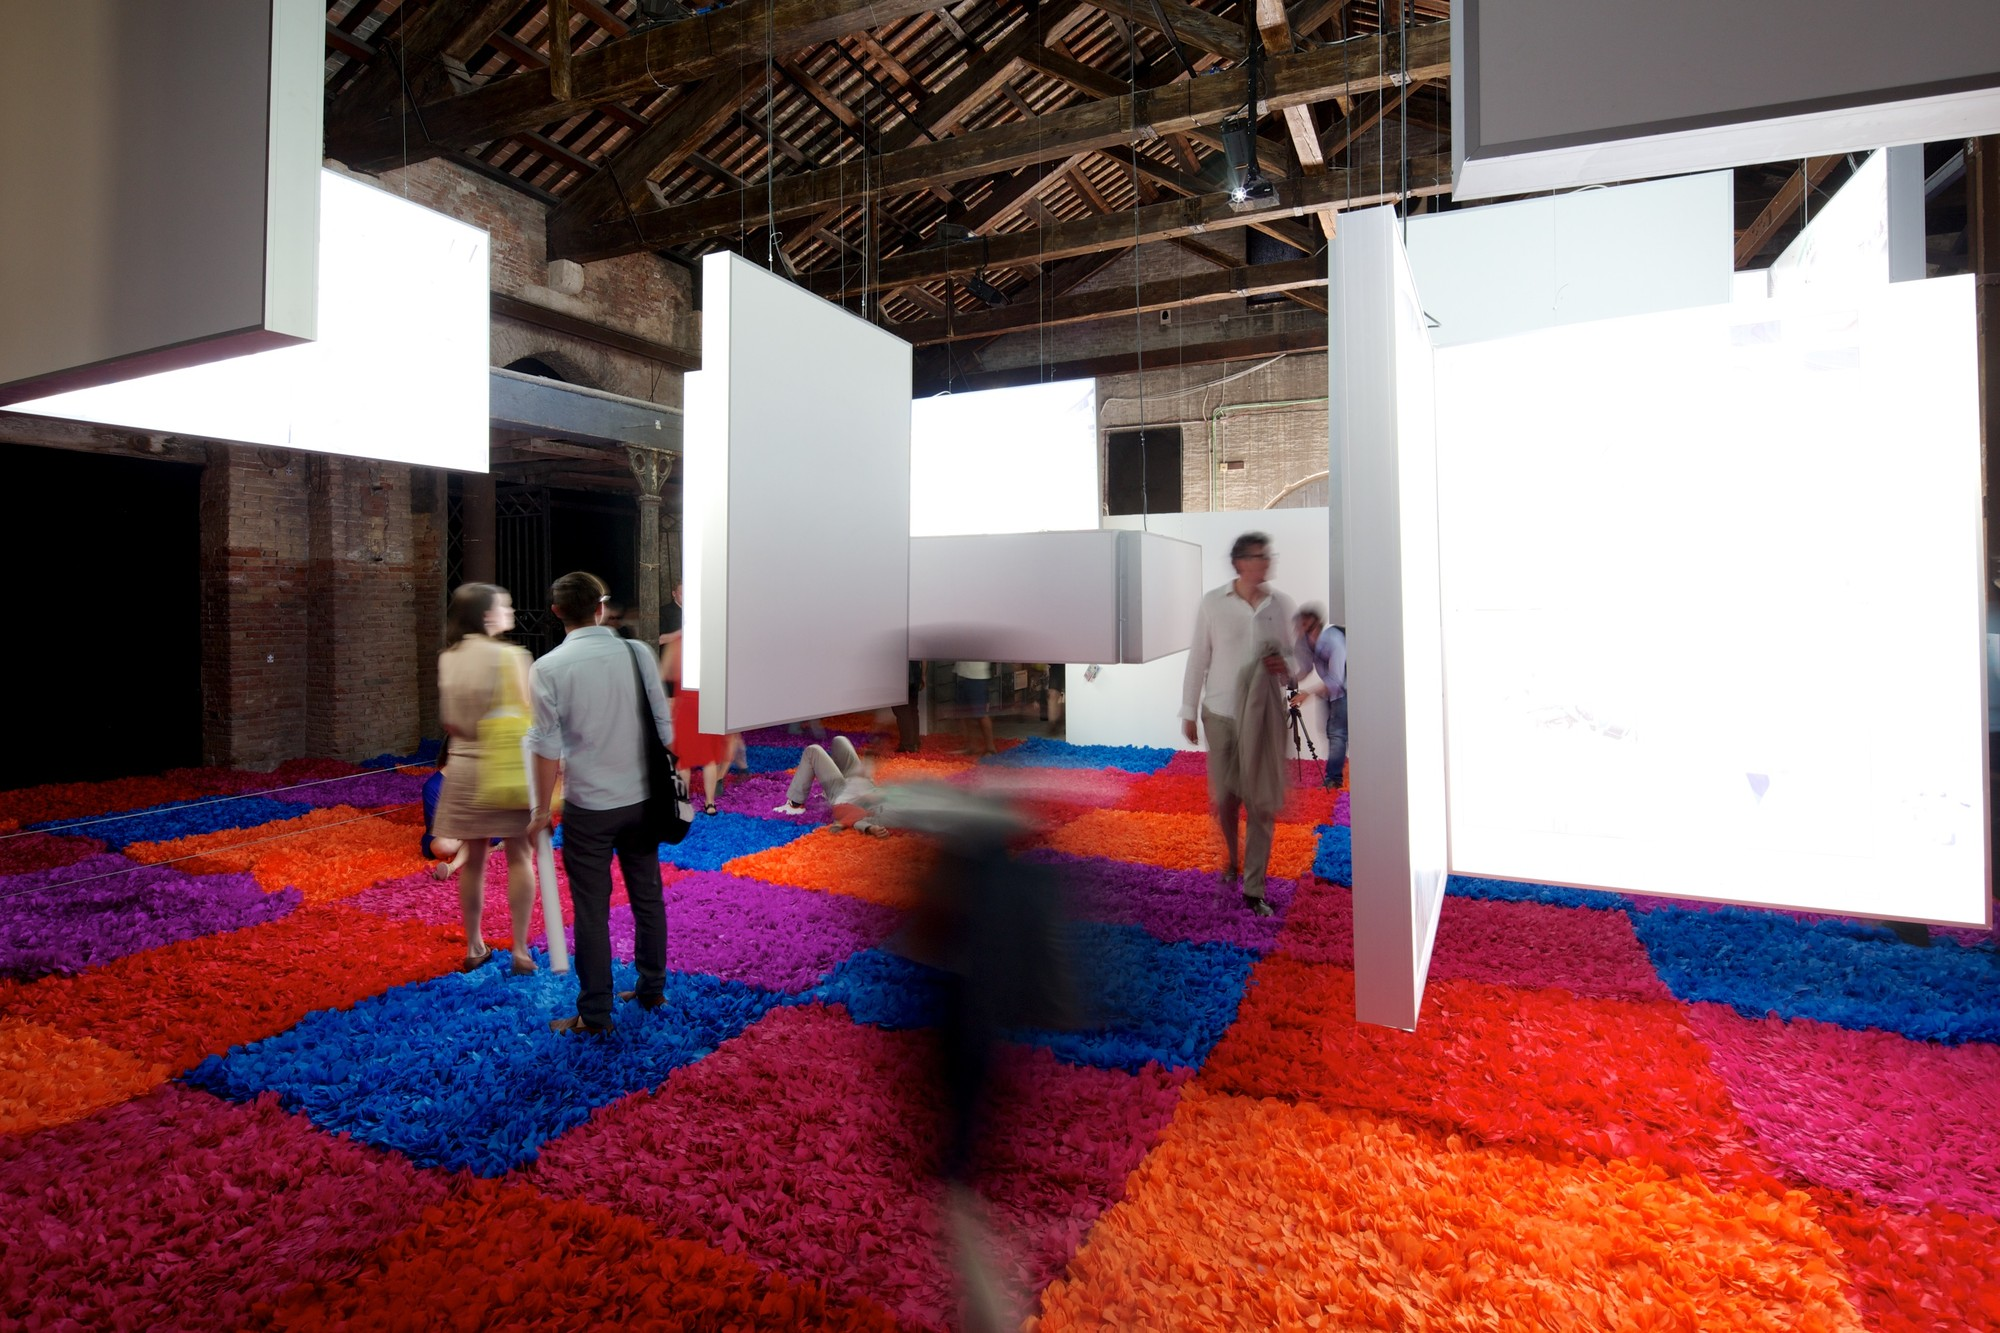 Fair Concrete/La Feria Concreta: Dominican Republic Pavilion at the Venice Biennale 2014, © Nico Saieh